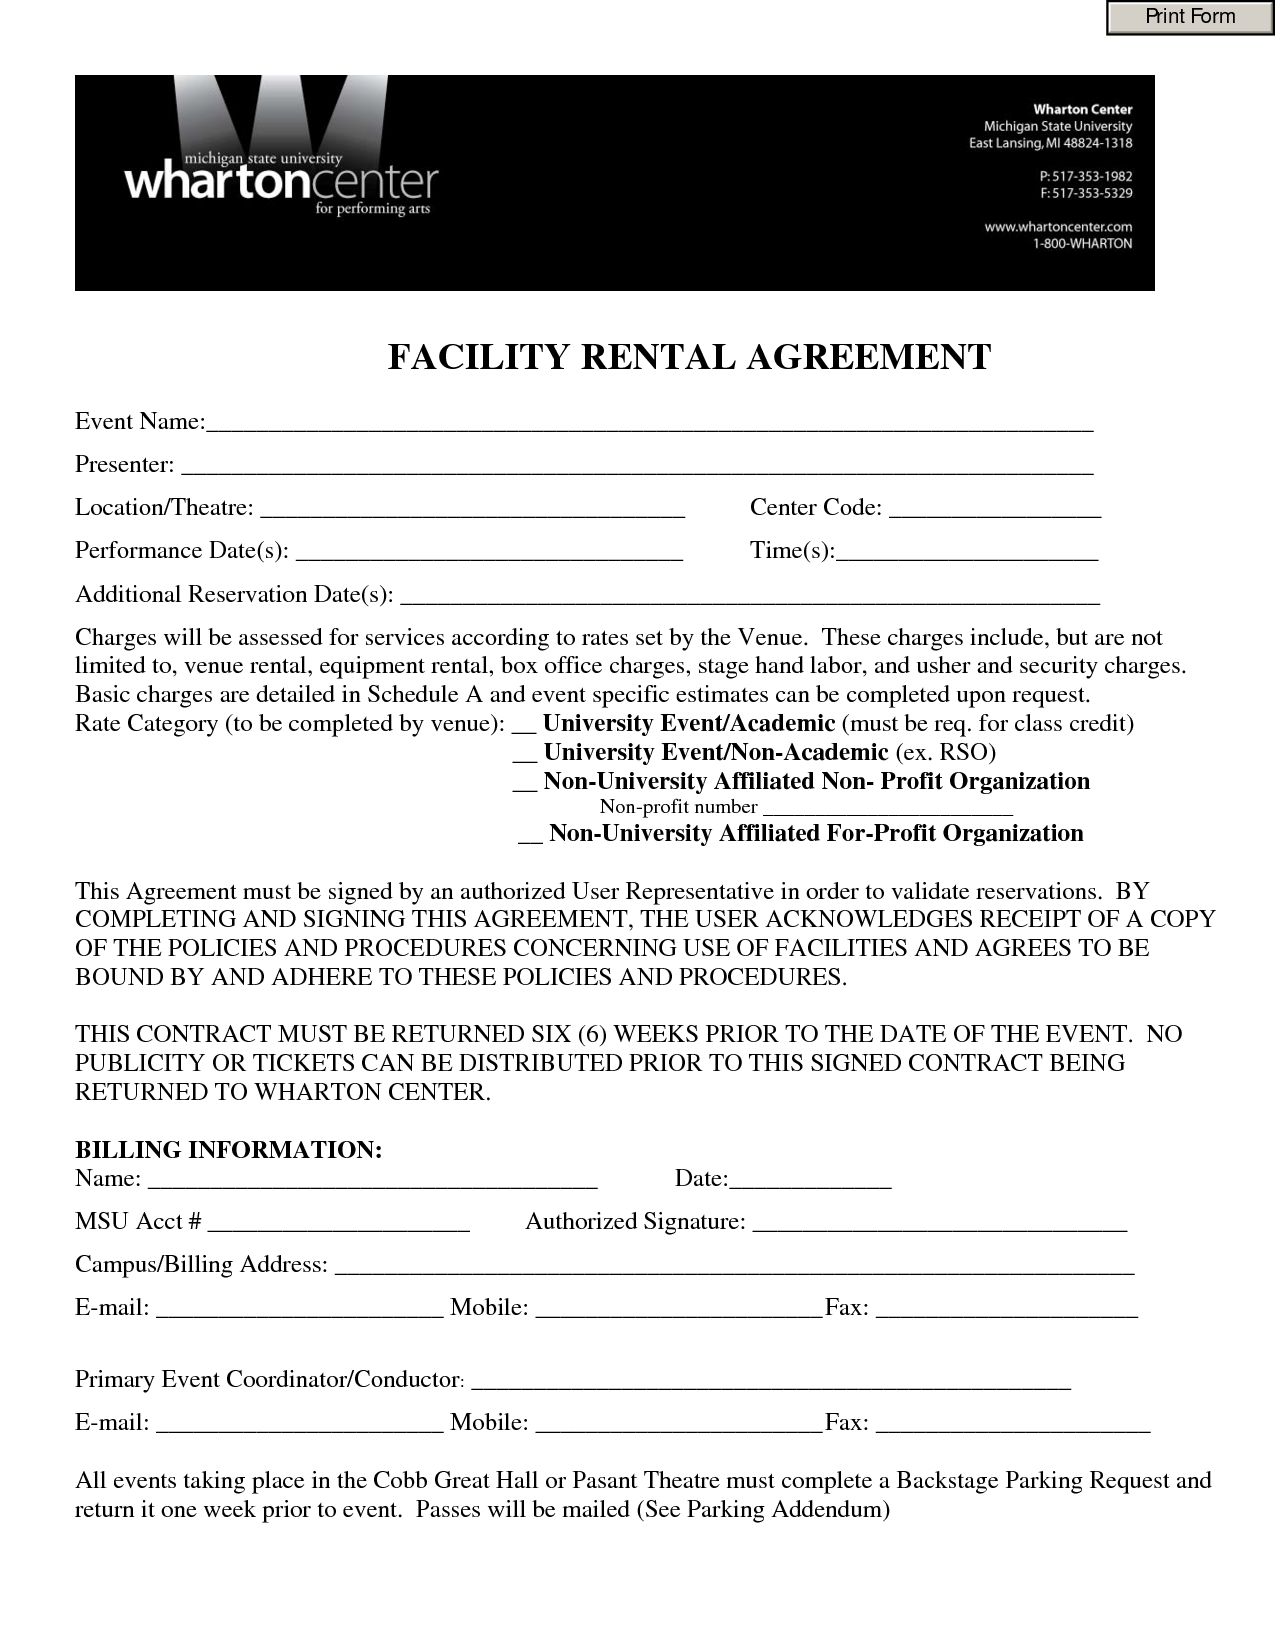 Event Contract Template - Invitation Templates - Facility Rental Agreement  Form